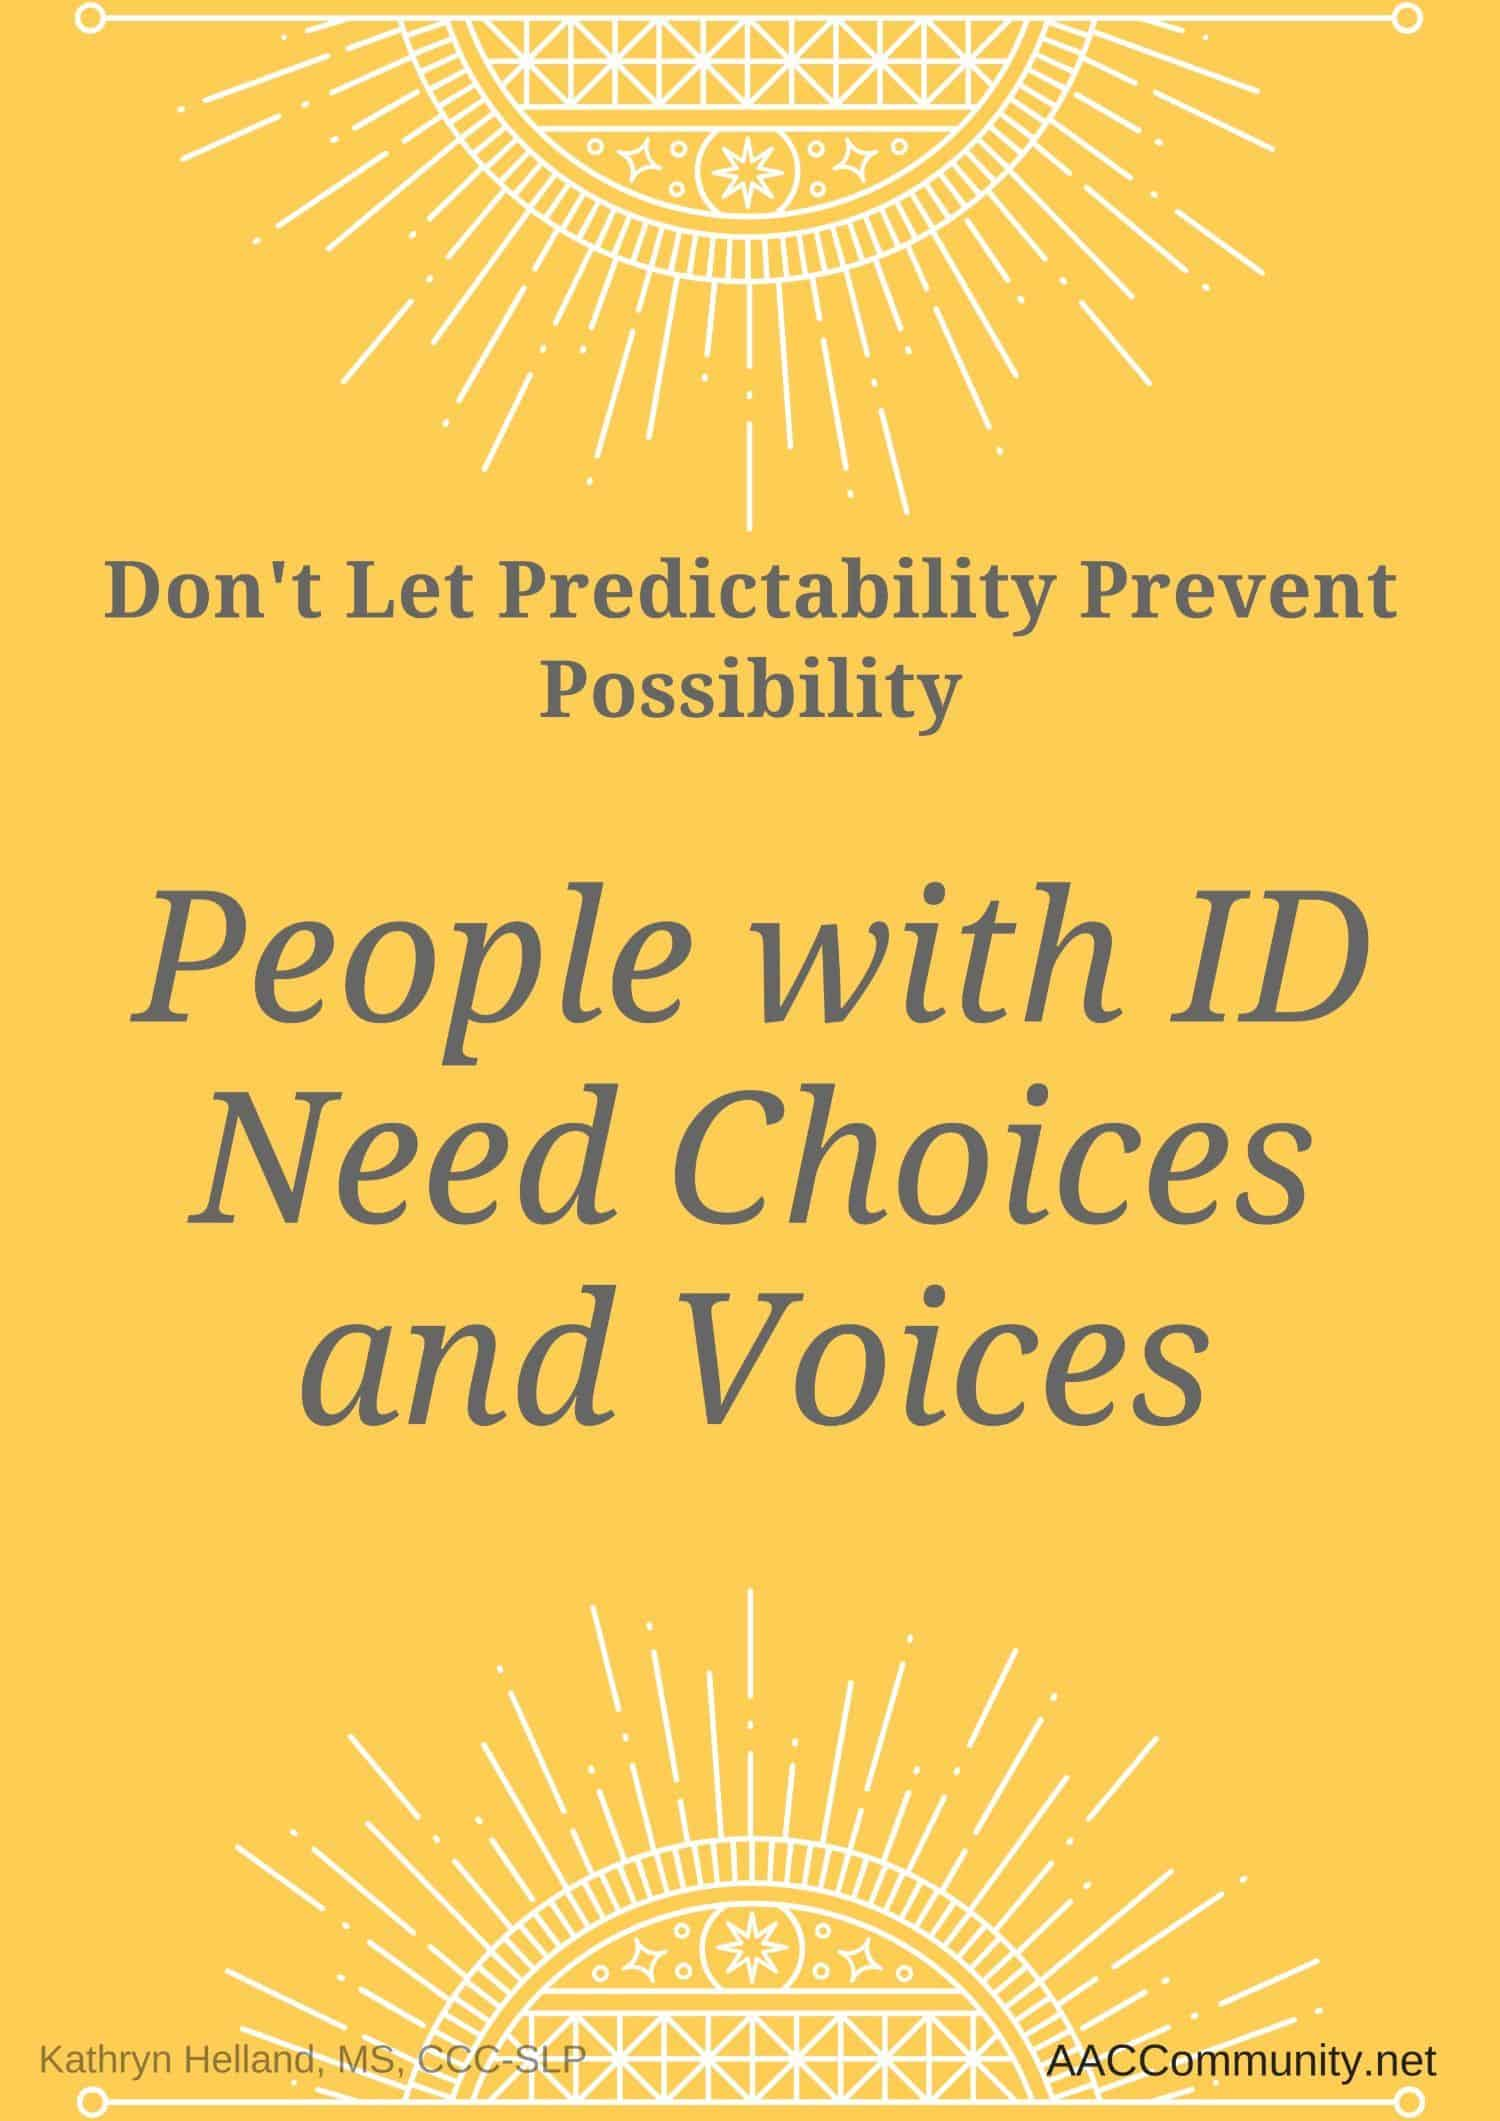 image of poster saying that people with ID need choices and voices